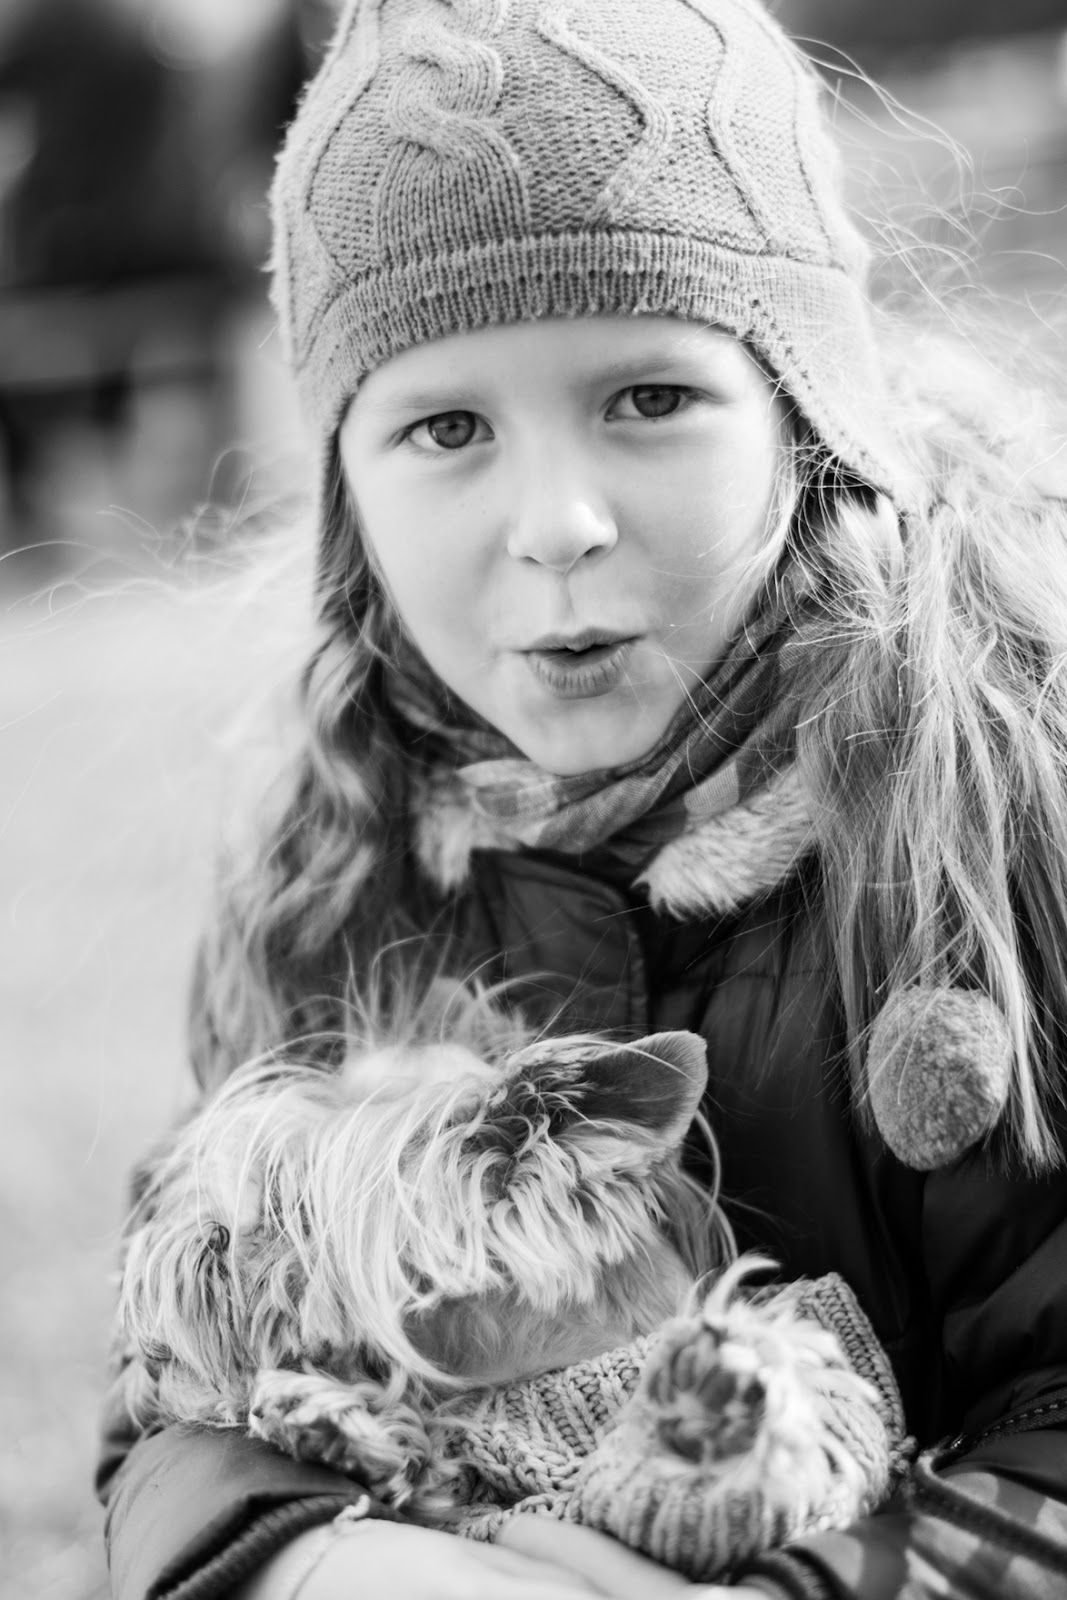 Little girl and the dog